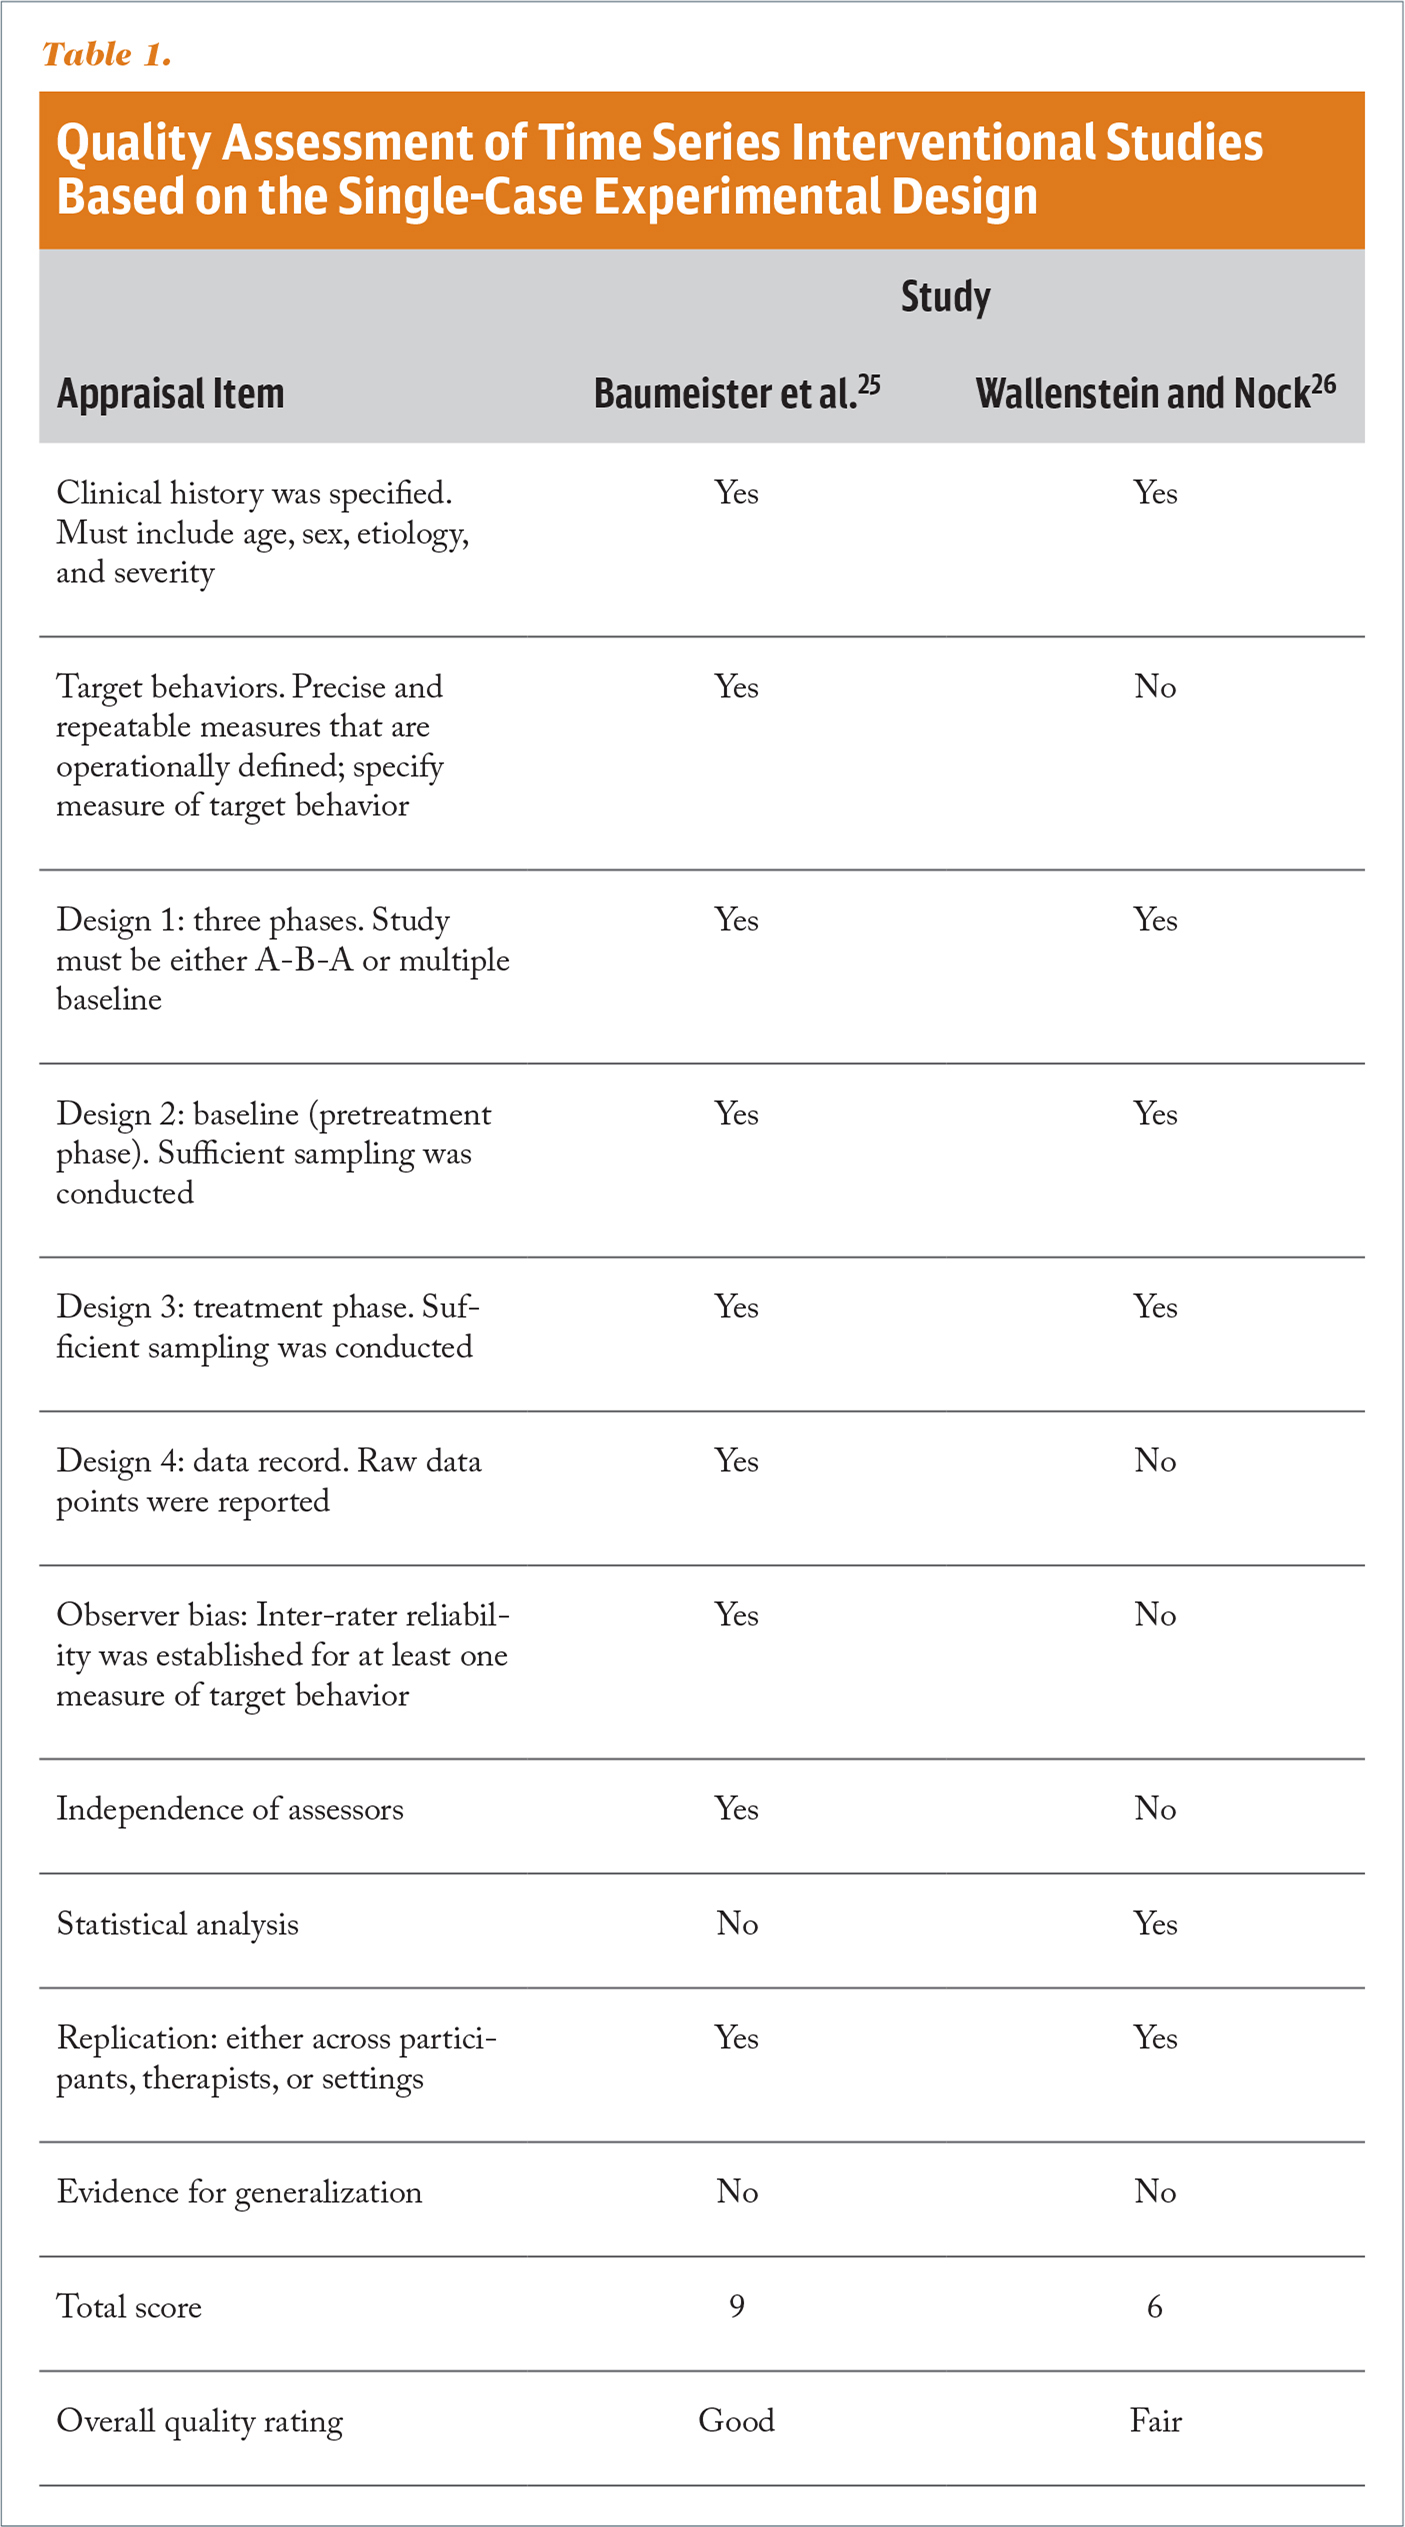 Quality Assessment of Time Series Interventional Studies Based on the Single-Case Experimental Design